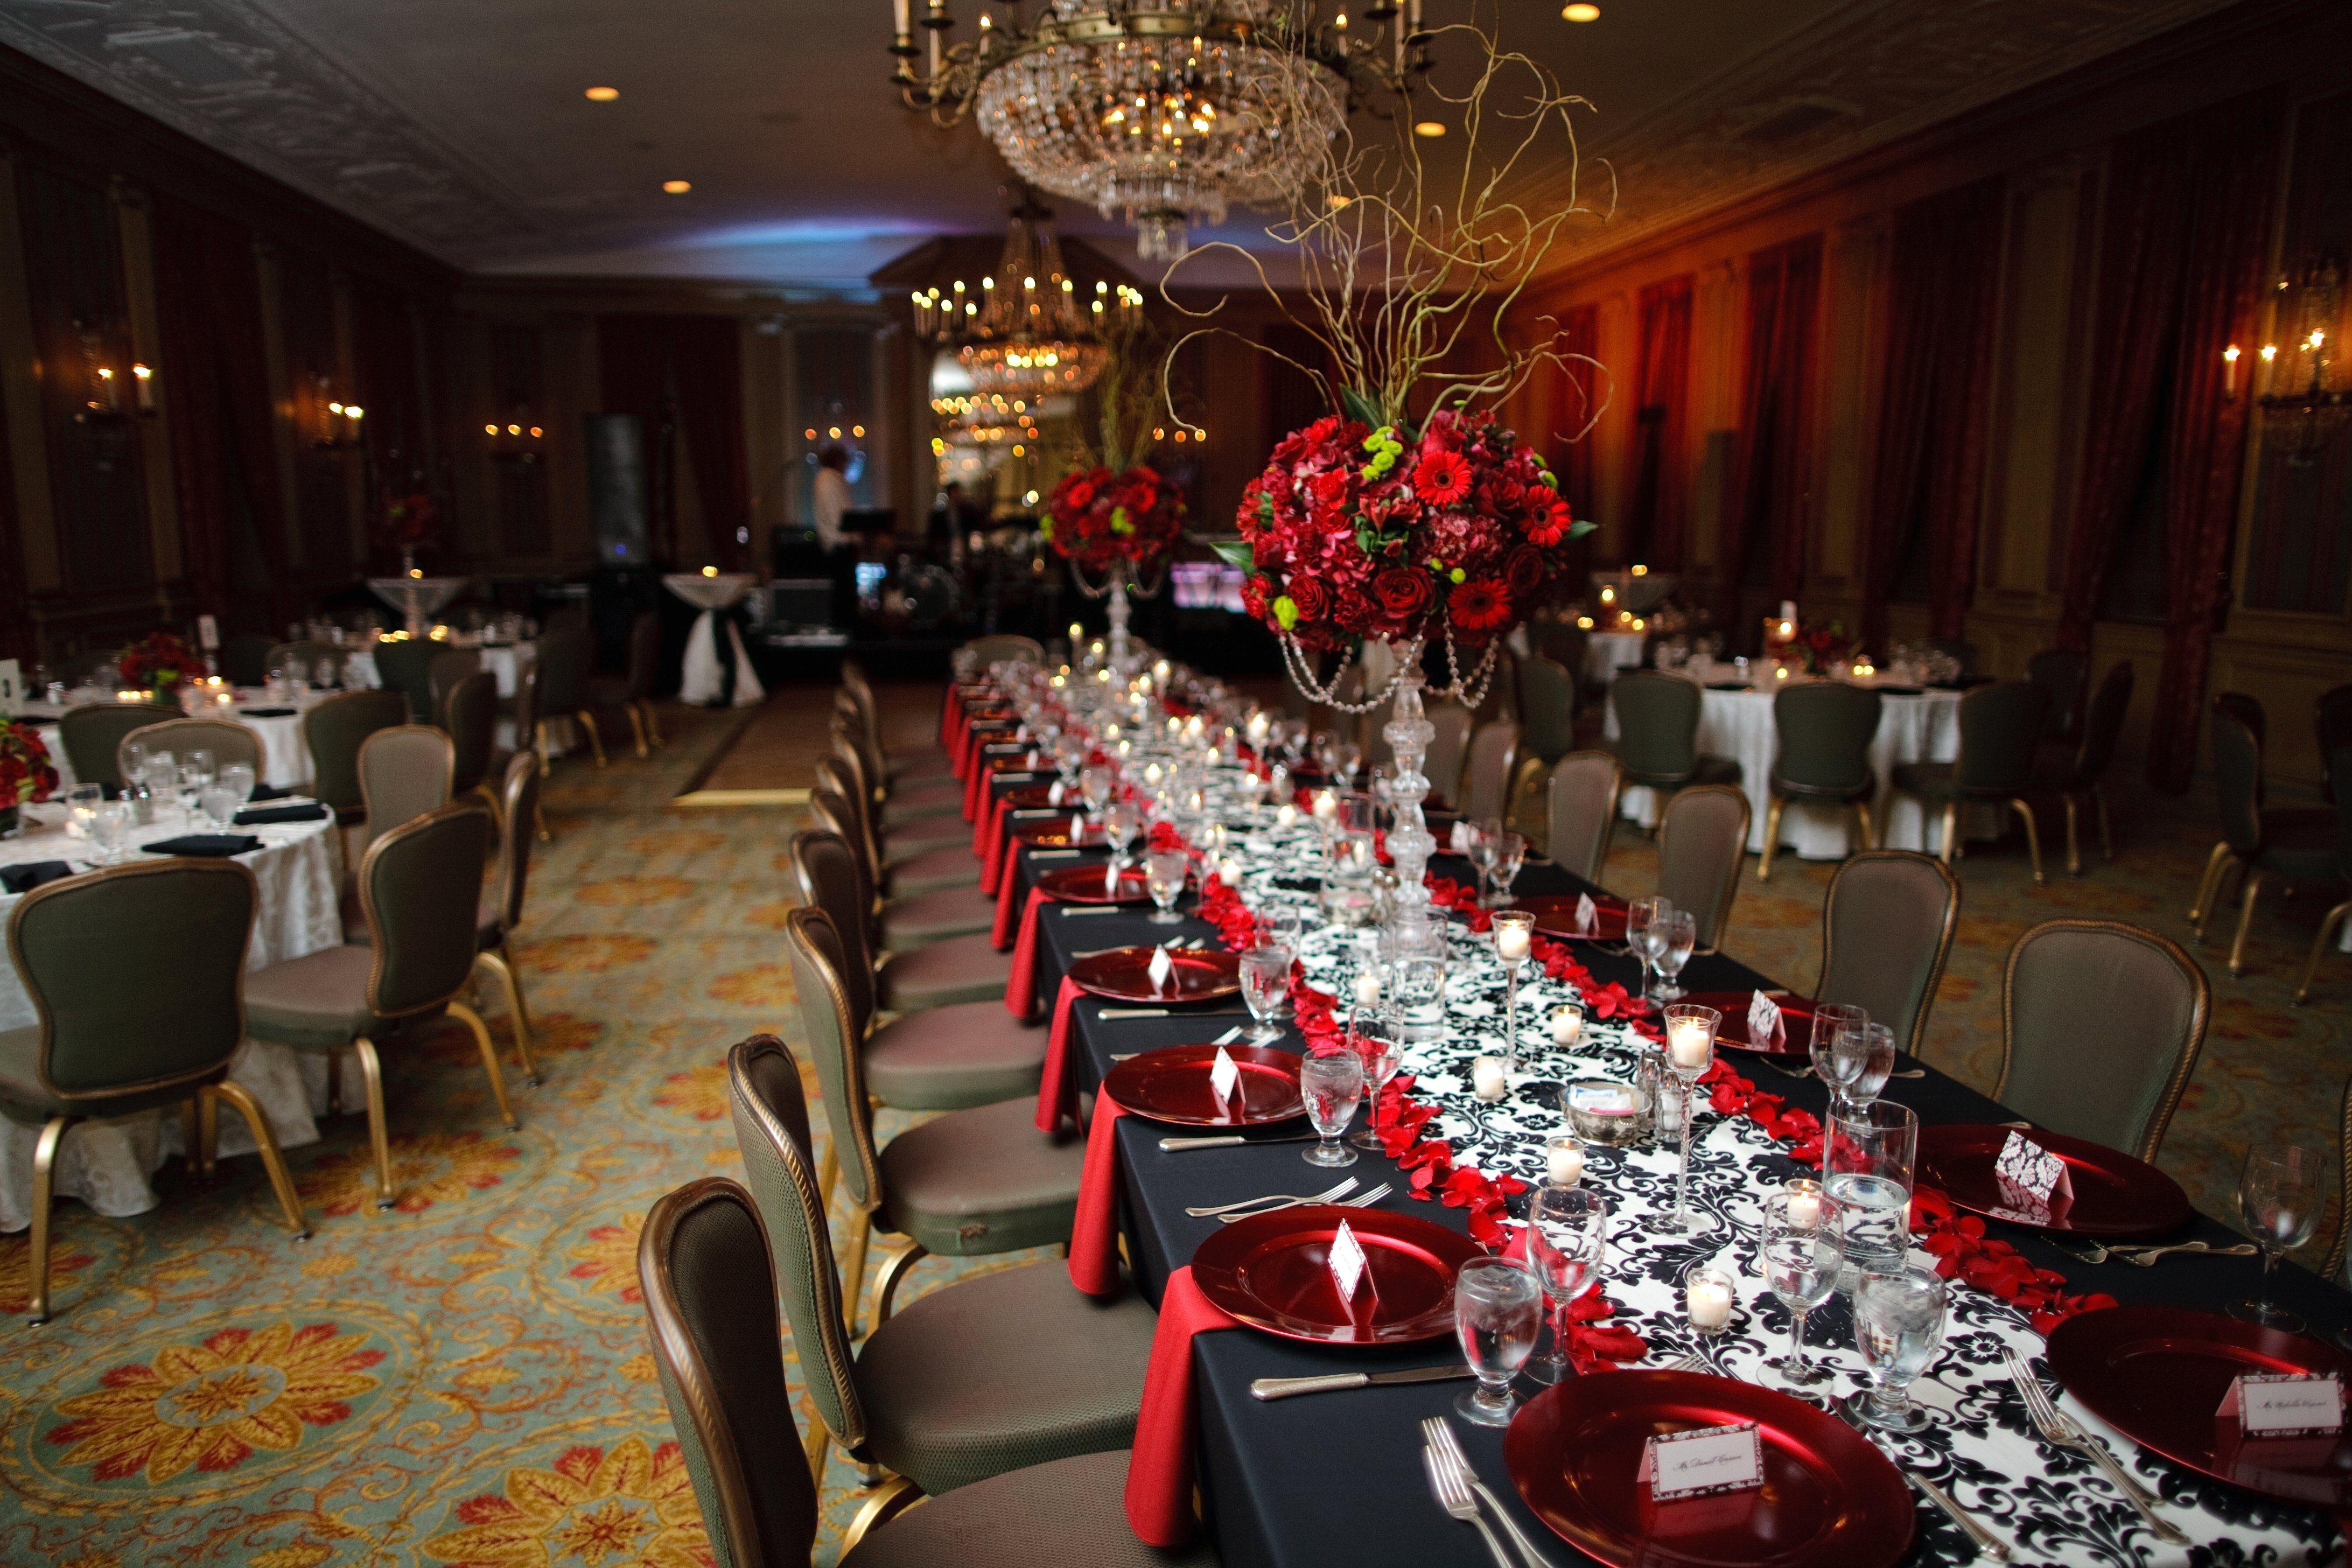 10 Attractive Red And Black Wedding Ideas wedding ballroom ideas awesome wedding ideas amazing red white and 2021